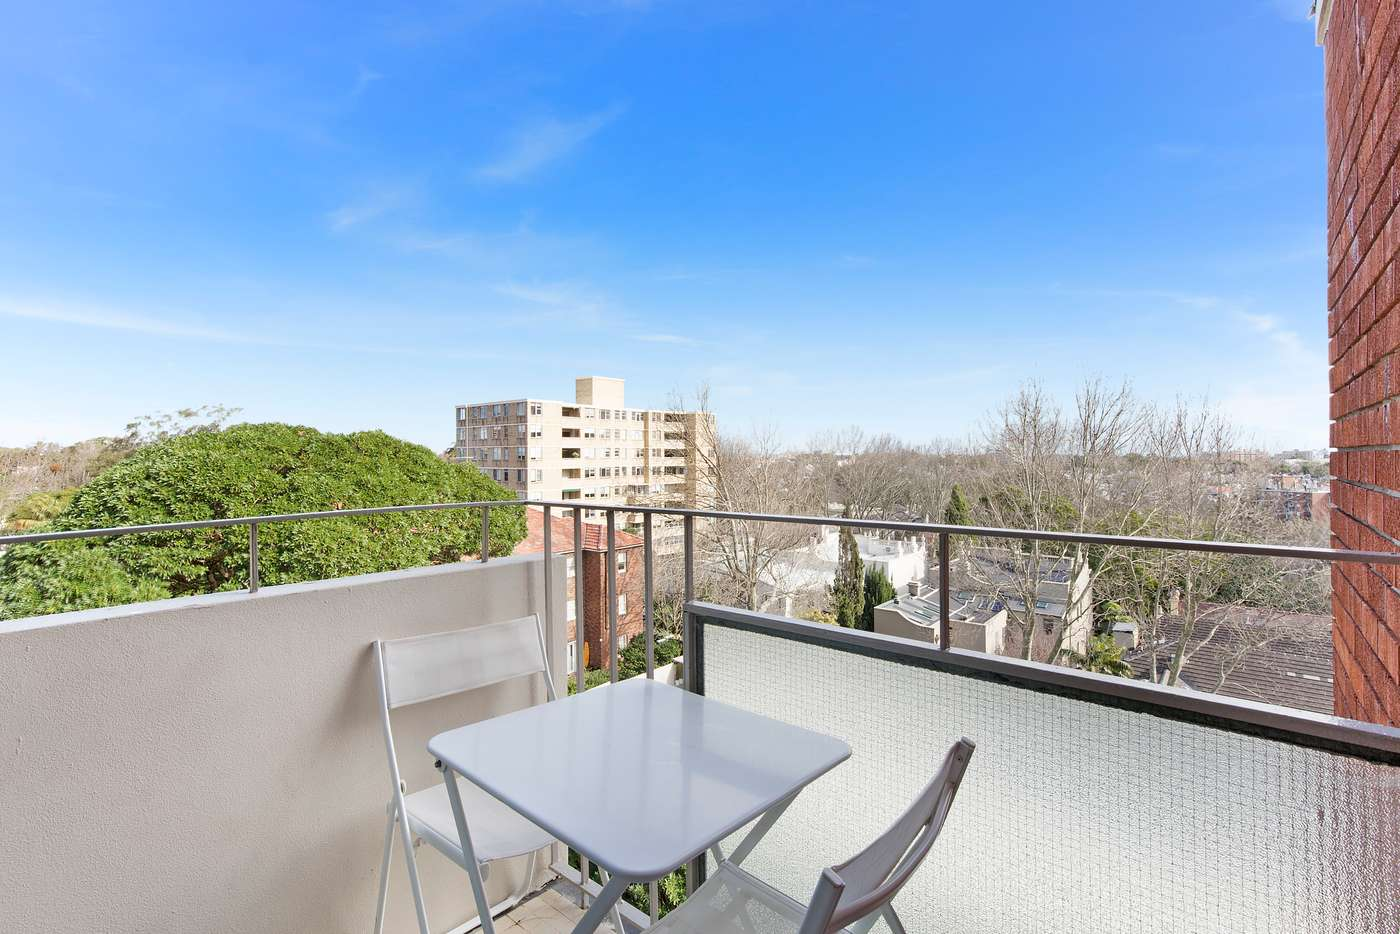 Main view of Homely apartment listing, 25/8-14 Fullerton Street, Woollahra NSW 2025